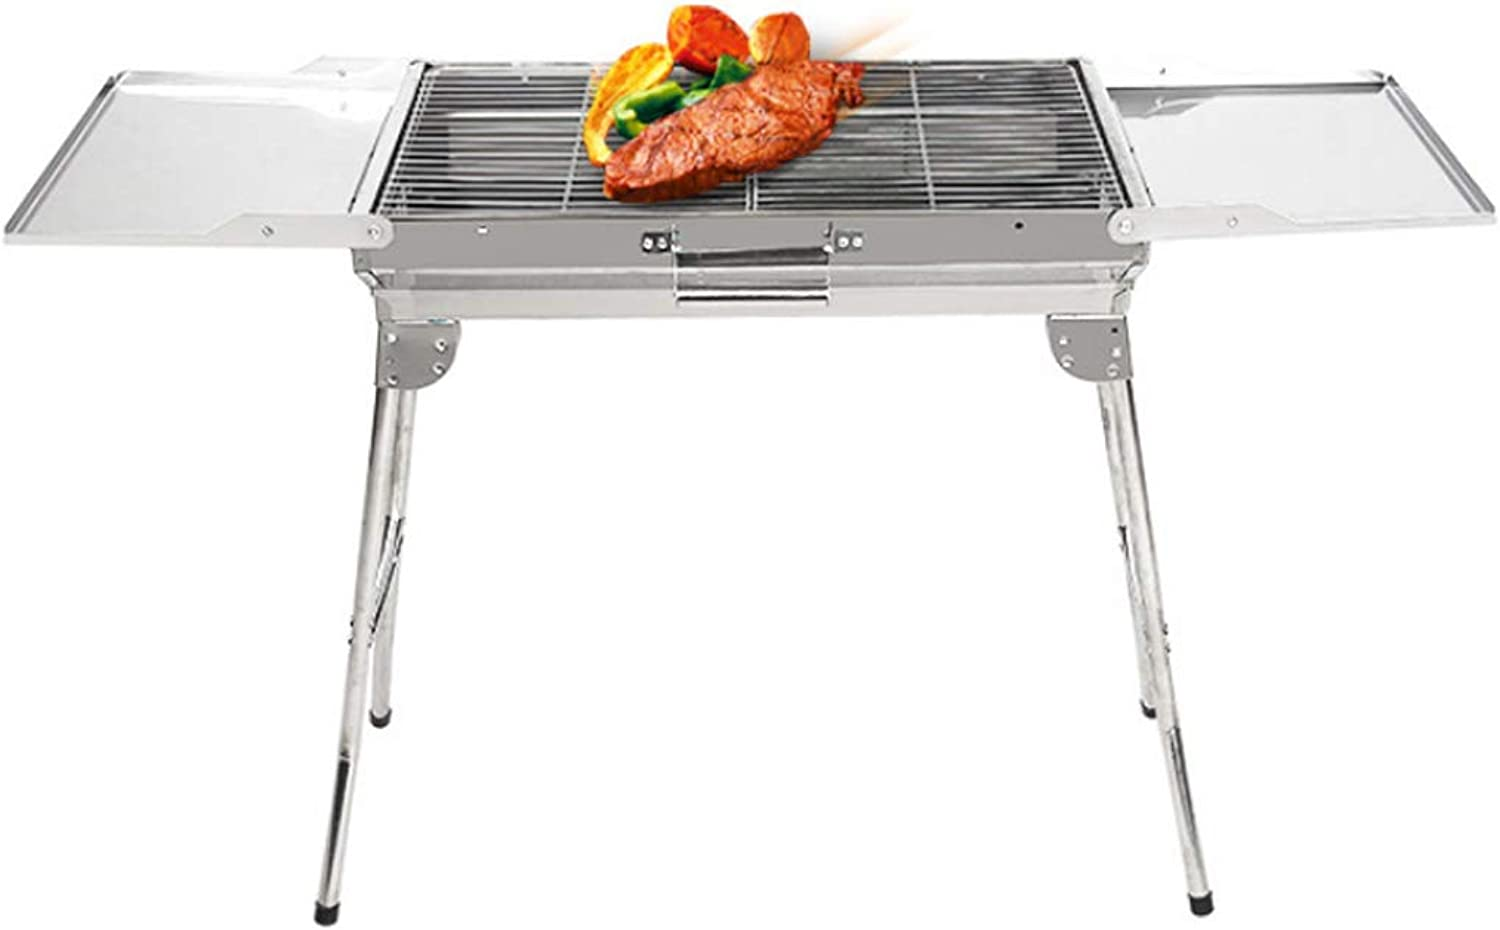 BBQ Barbecue Grill Stainless Steel Charcoal Grill Smoker Folding Portable for Cooking Camping Picnics Backpacking